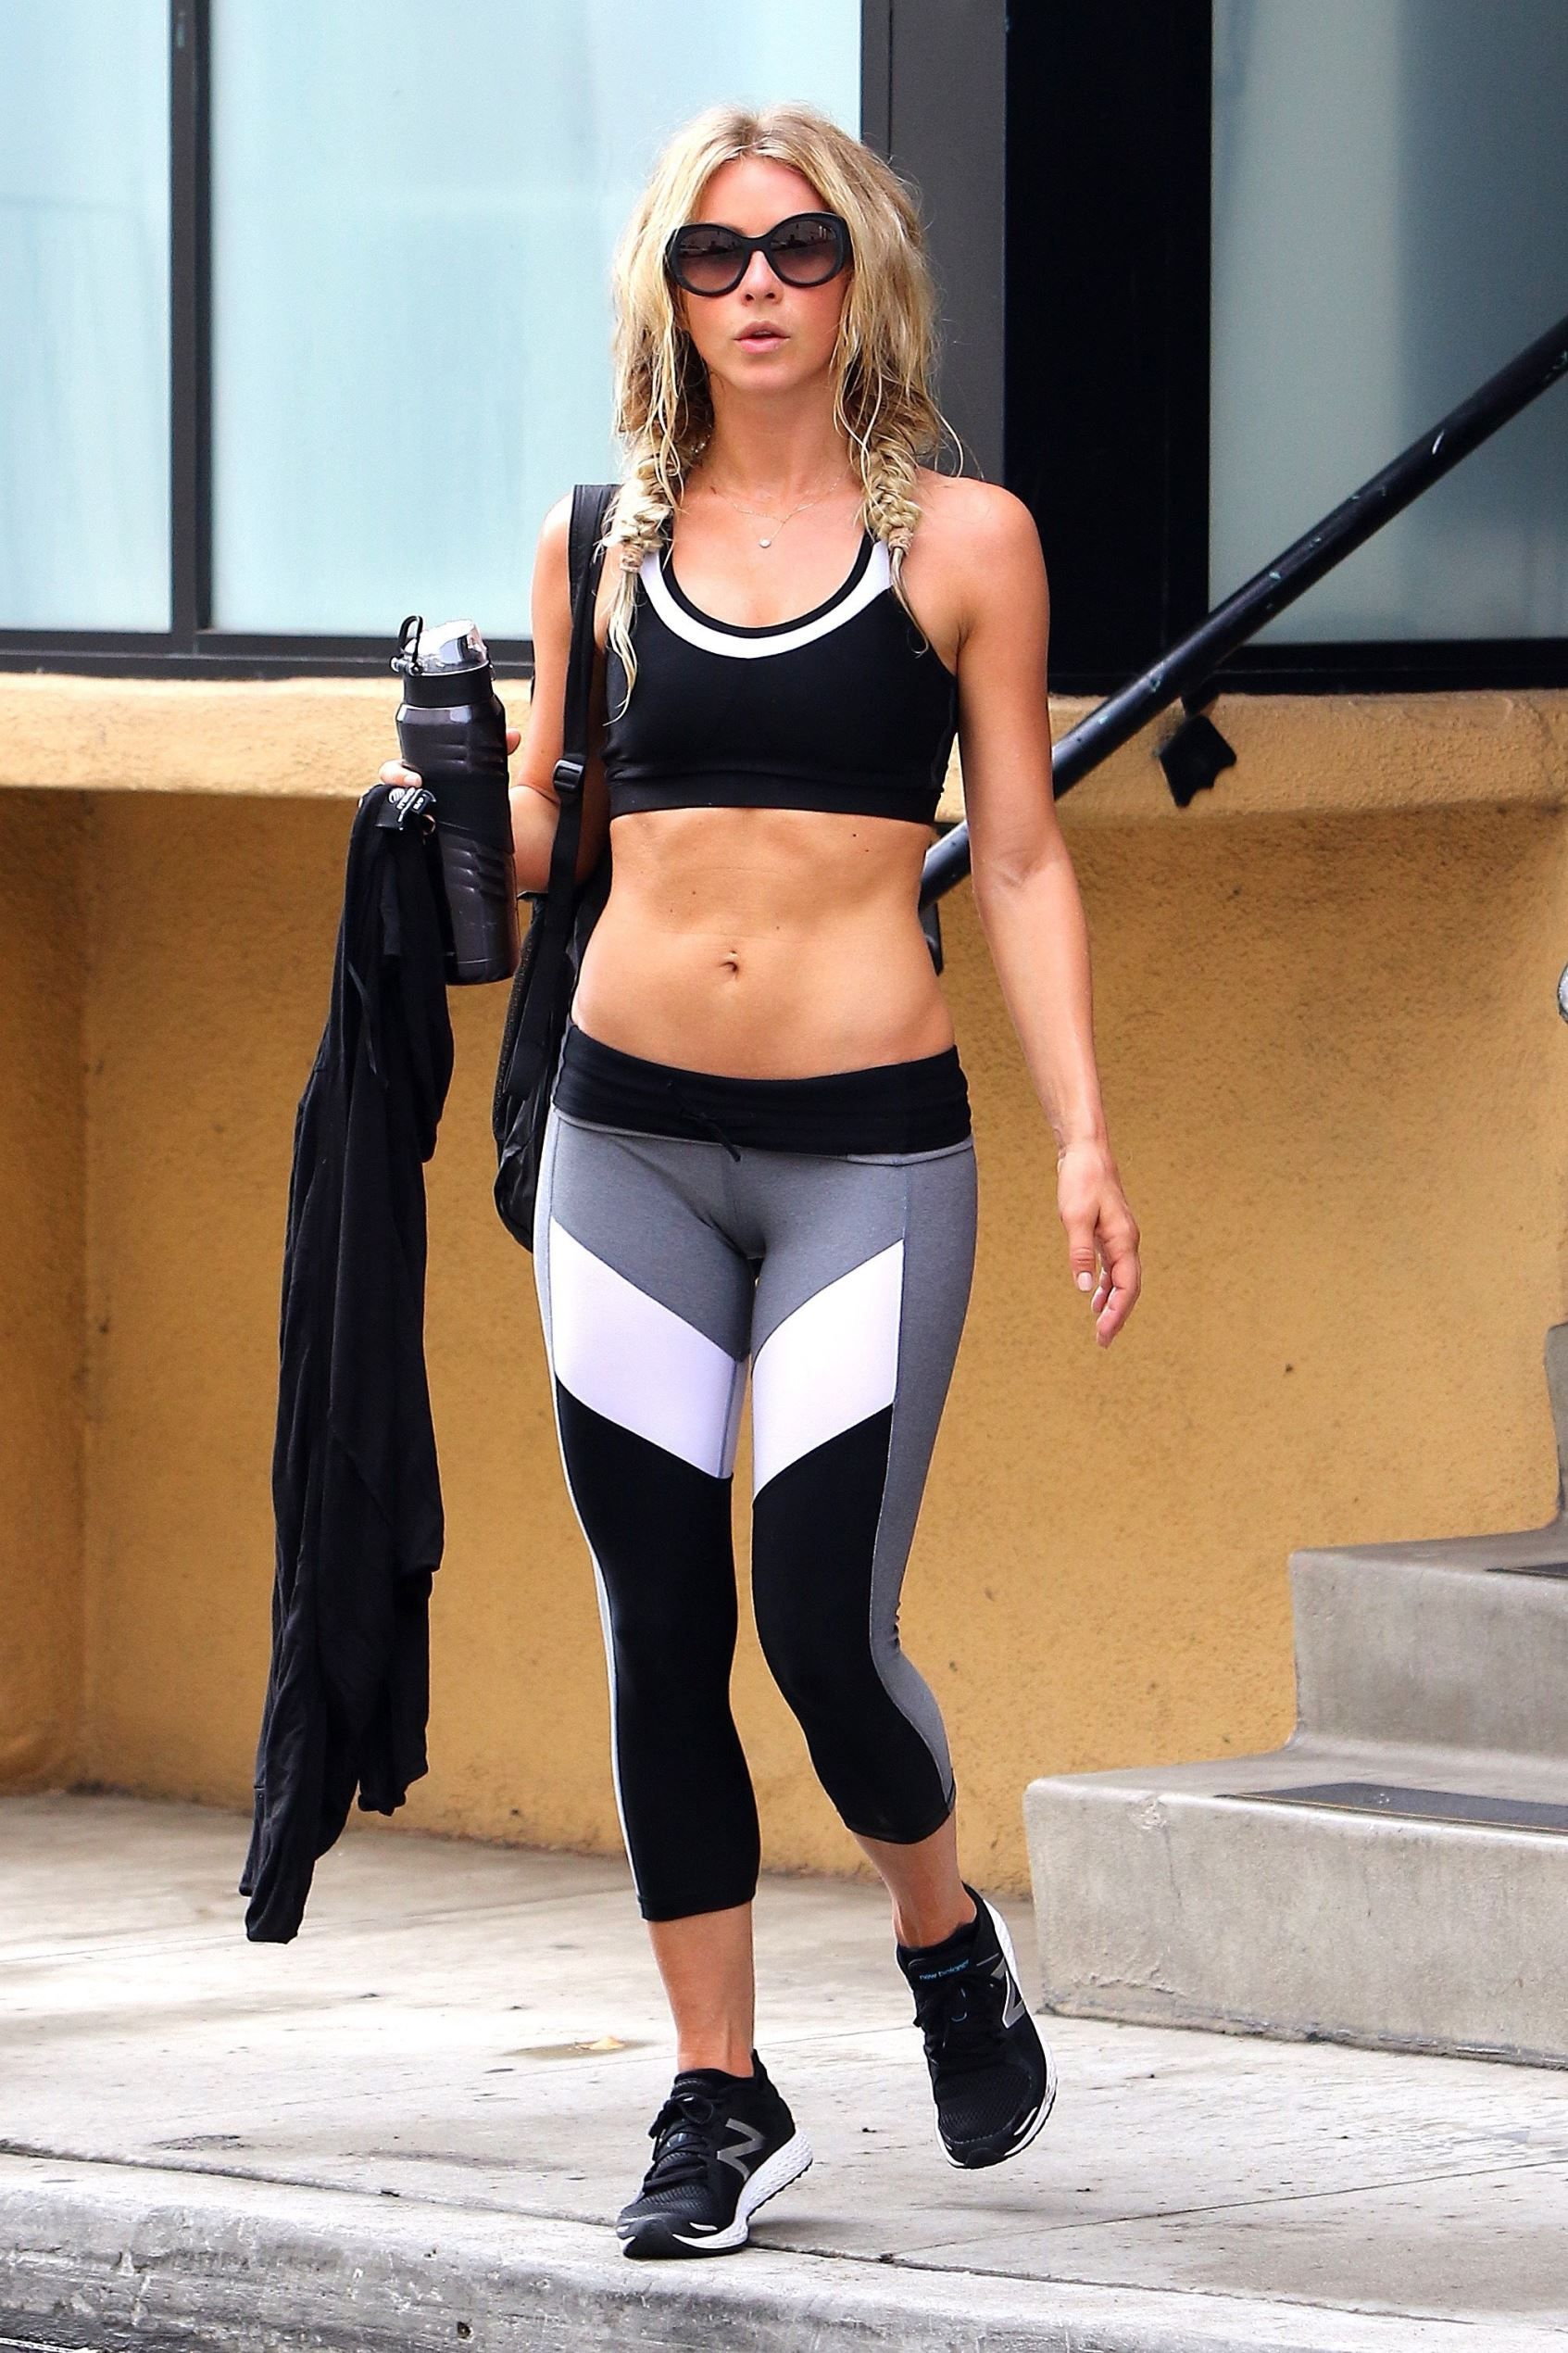 Julianne Hough Pics